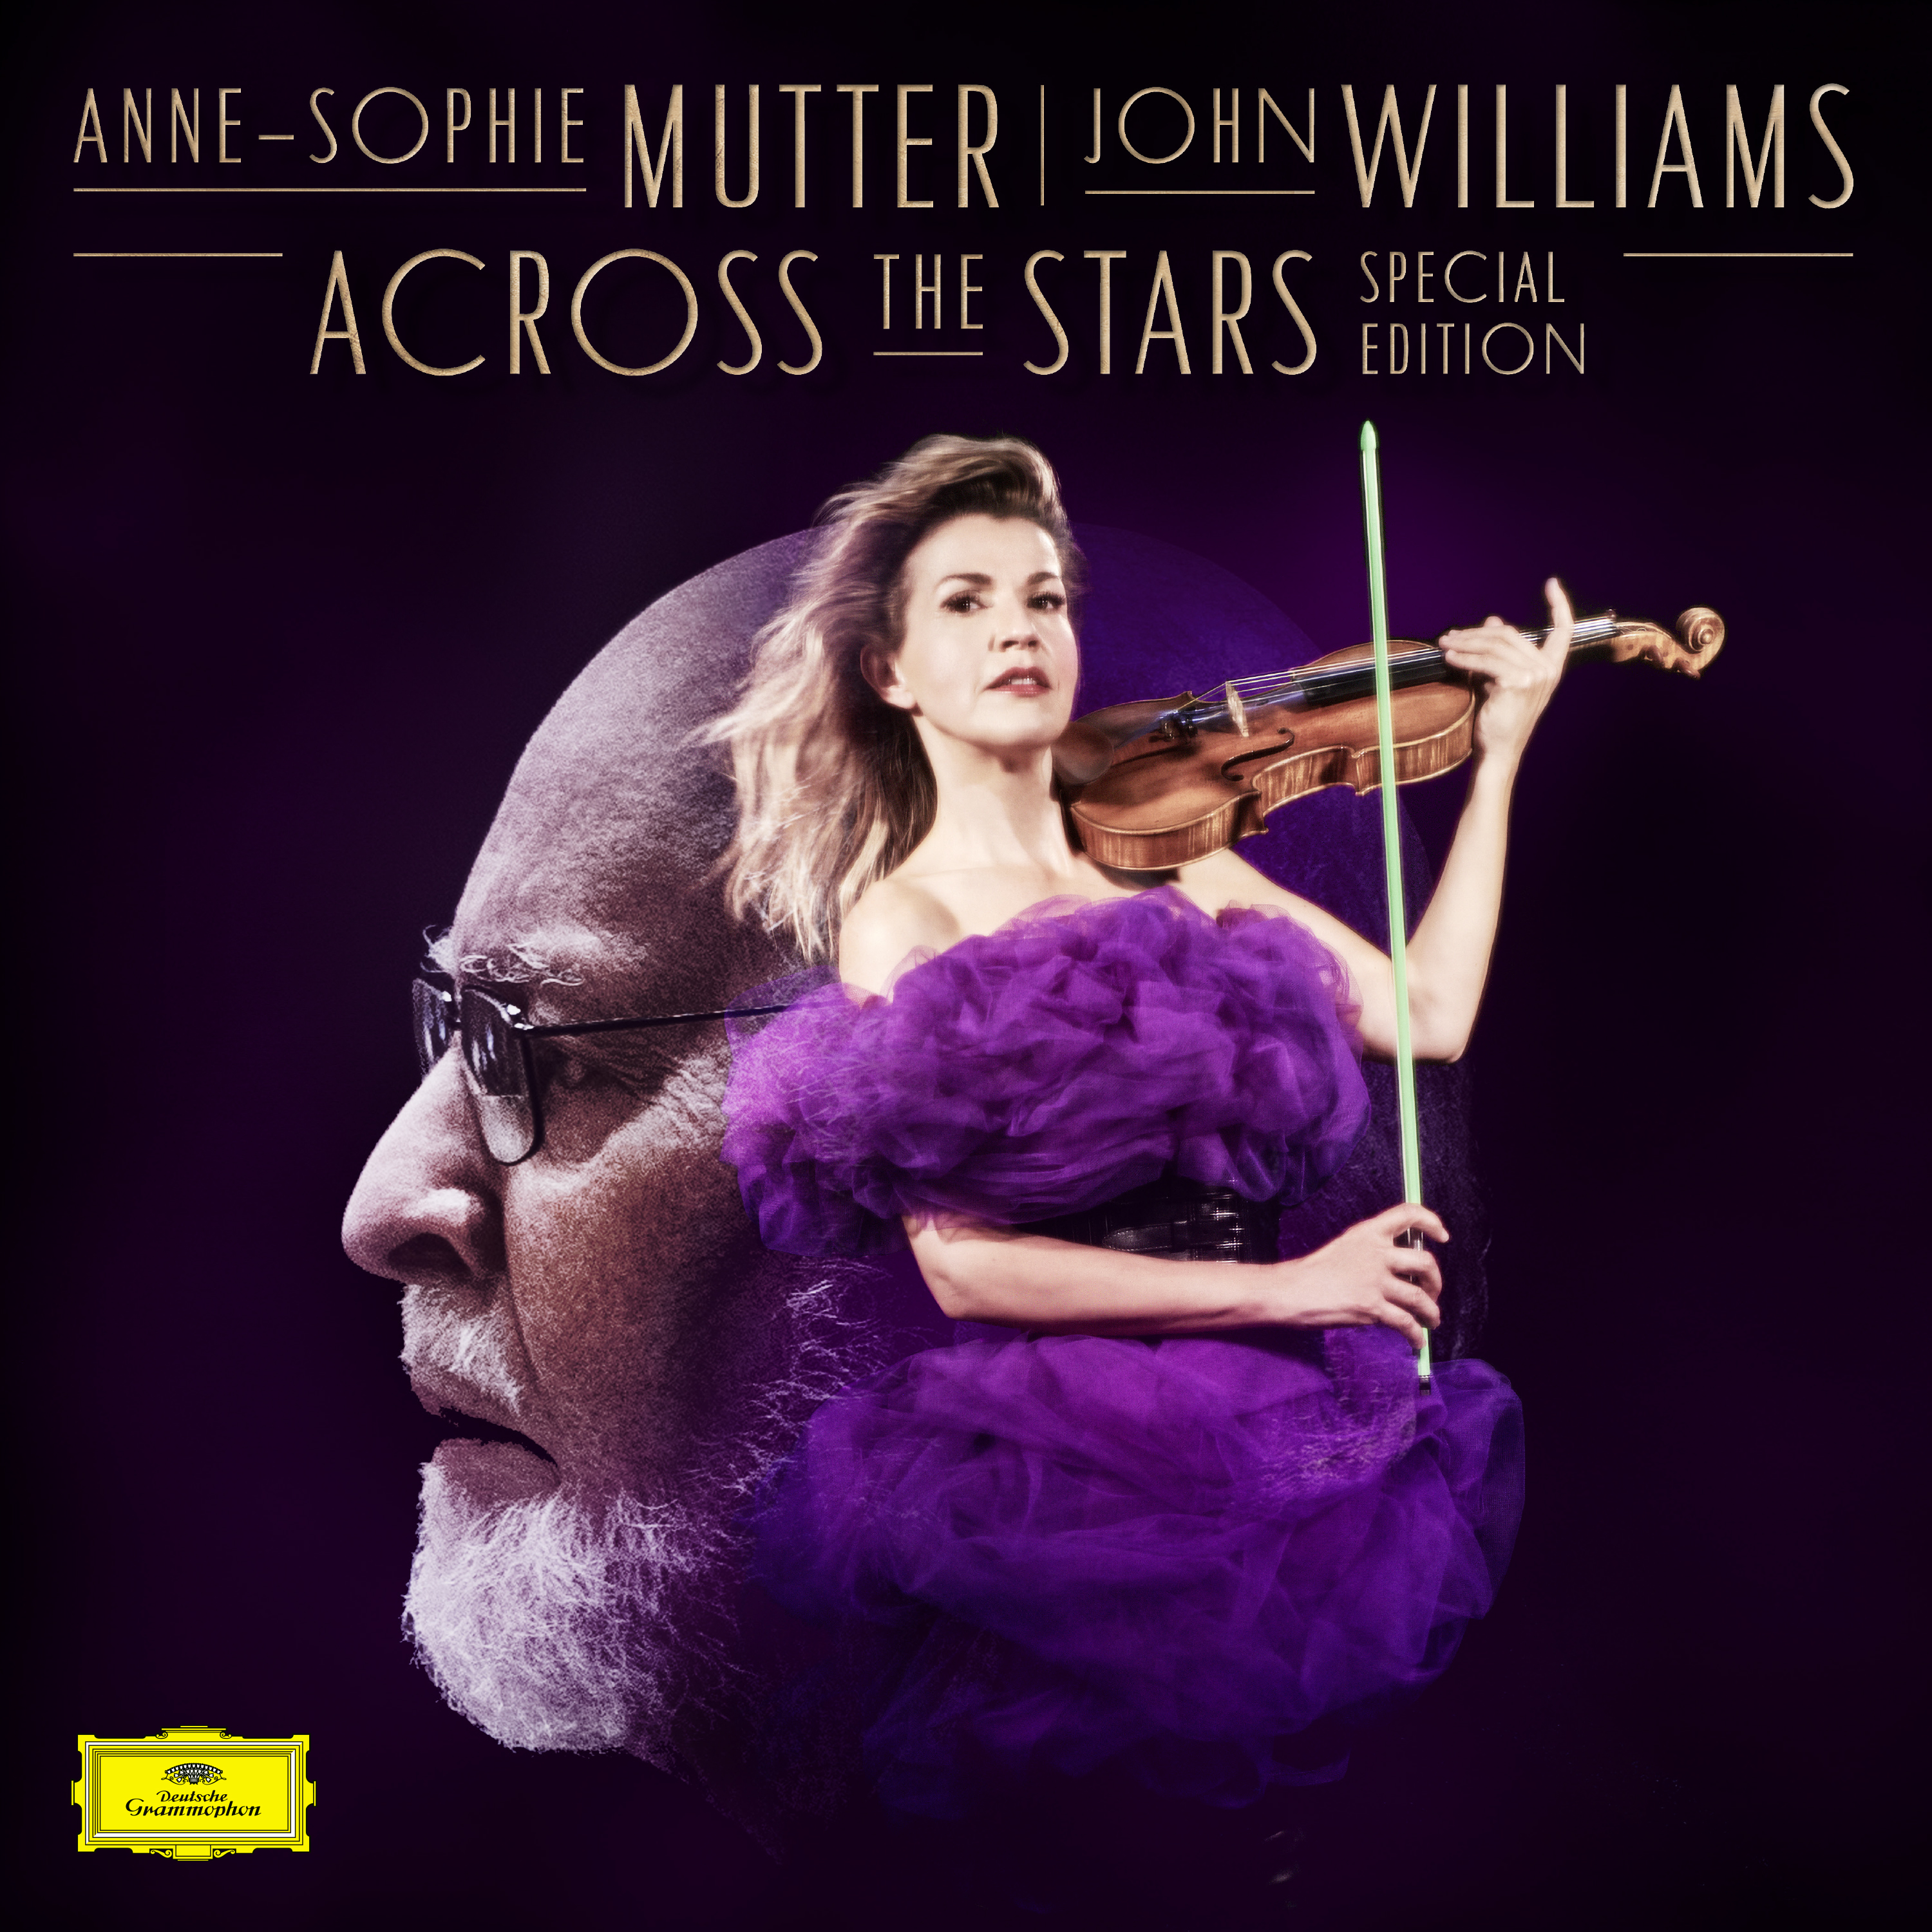 John Williams and Anne-Sophie Mutter - Across The Stars: Special Edition  [RSD BF 2019]